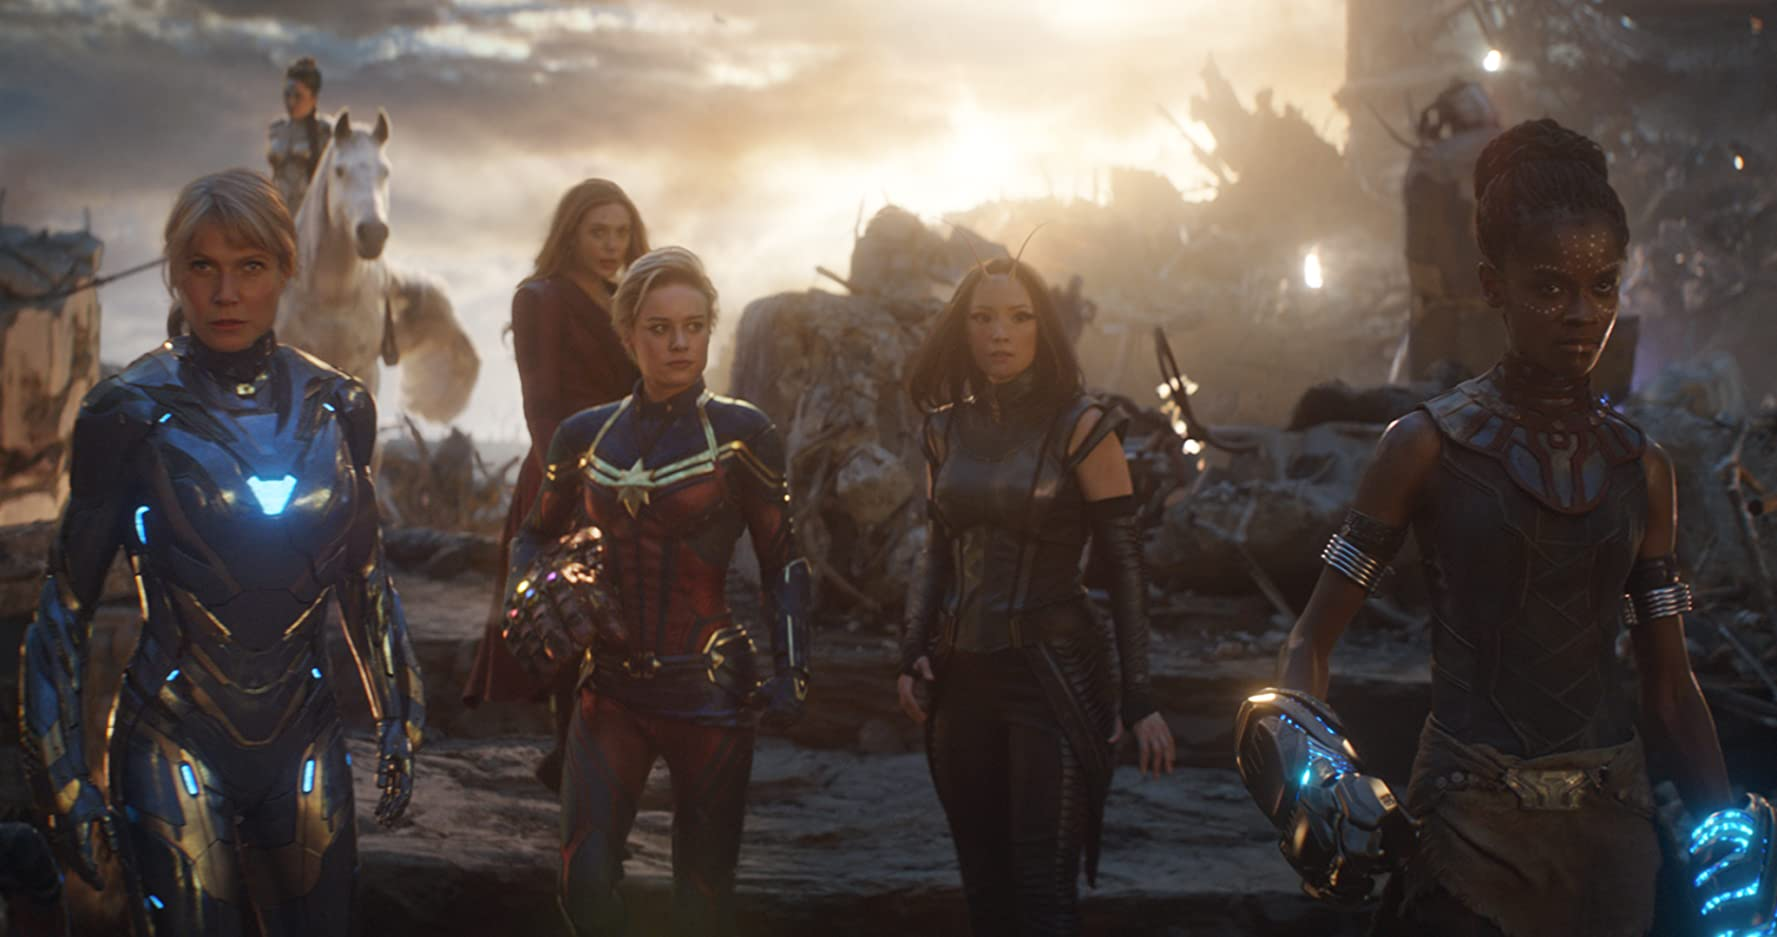 Gwyneth Paltrow, Brie Larson, Elizabeth Olsen, Tessa Thompson, Pom Klementieff, and Letitia Wright in Avengers: Endgame (2019)